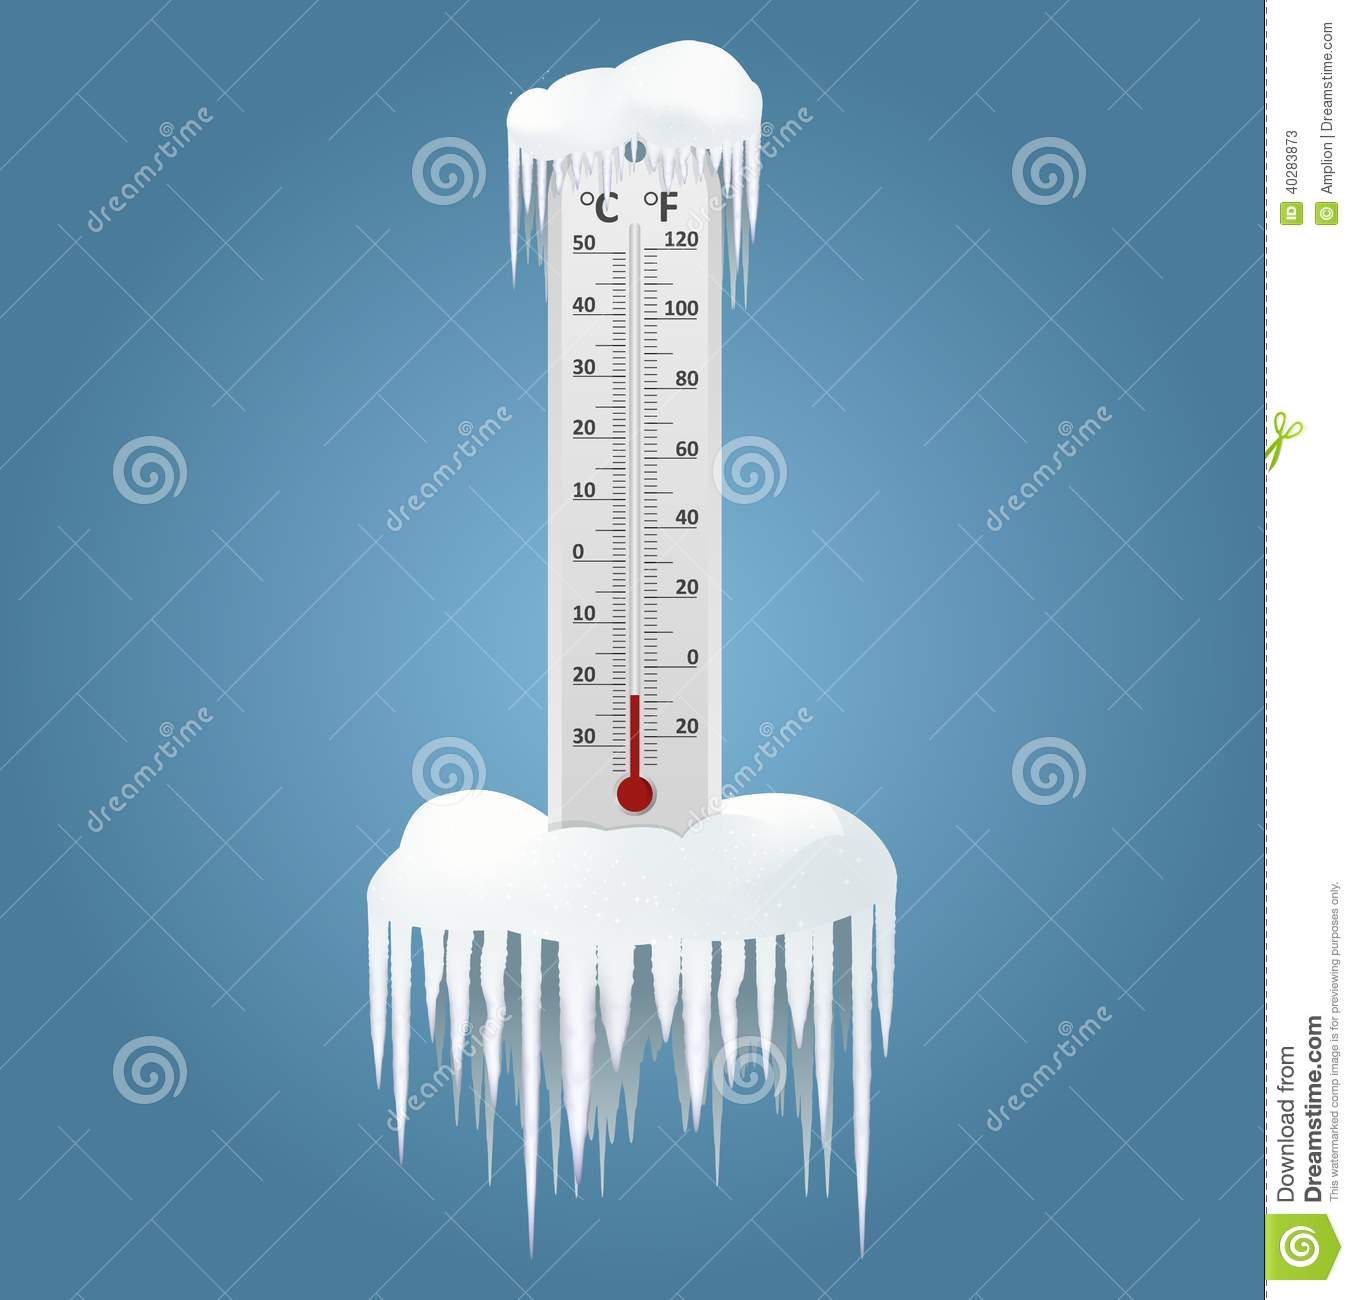 Frozen Thermometer Clip Art Frozen Thermometer Stock